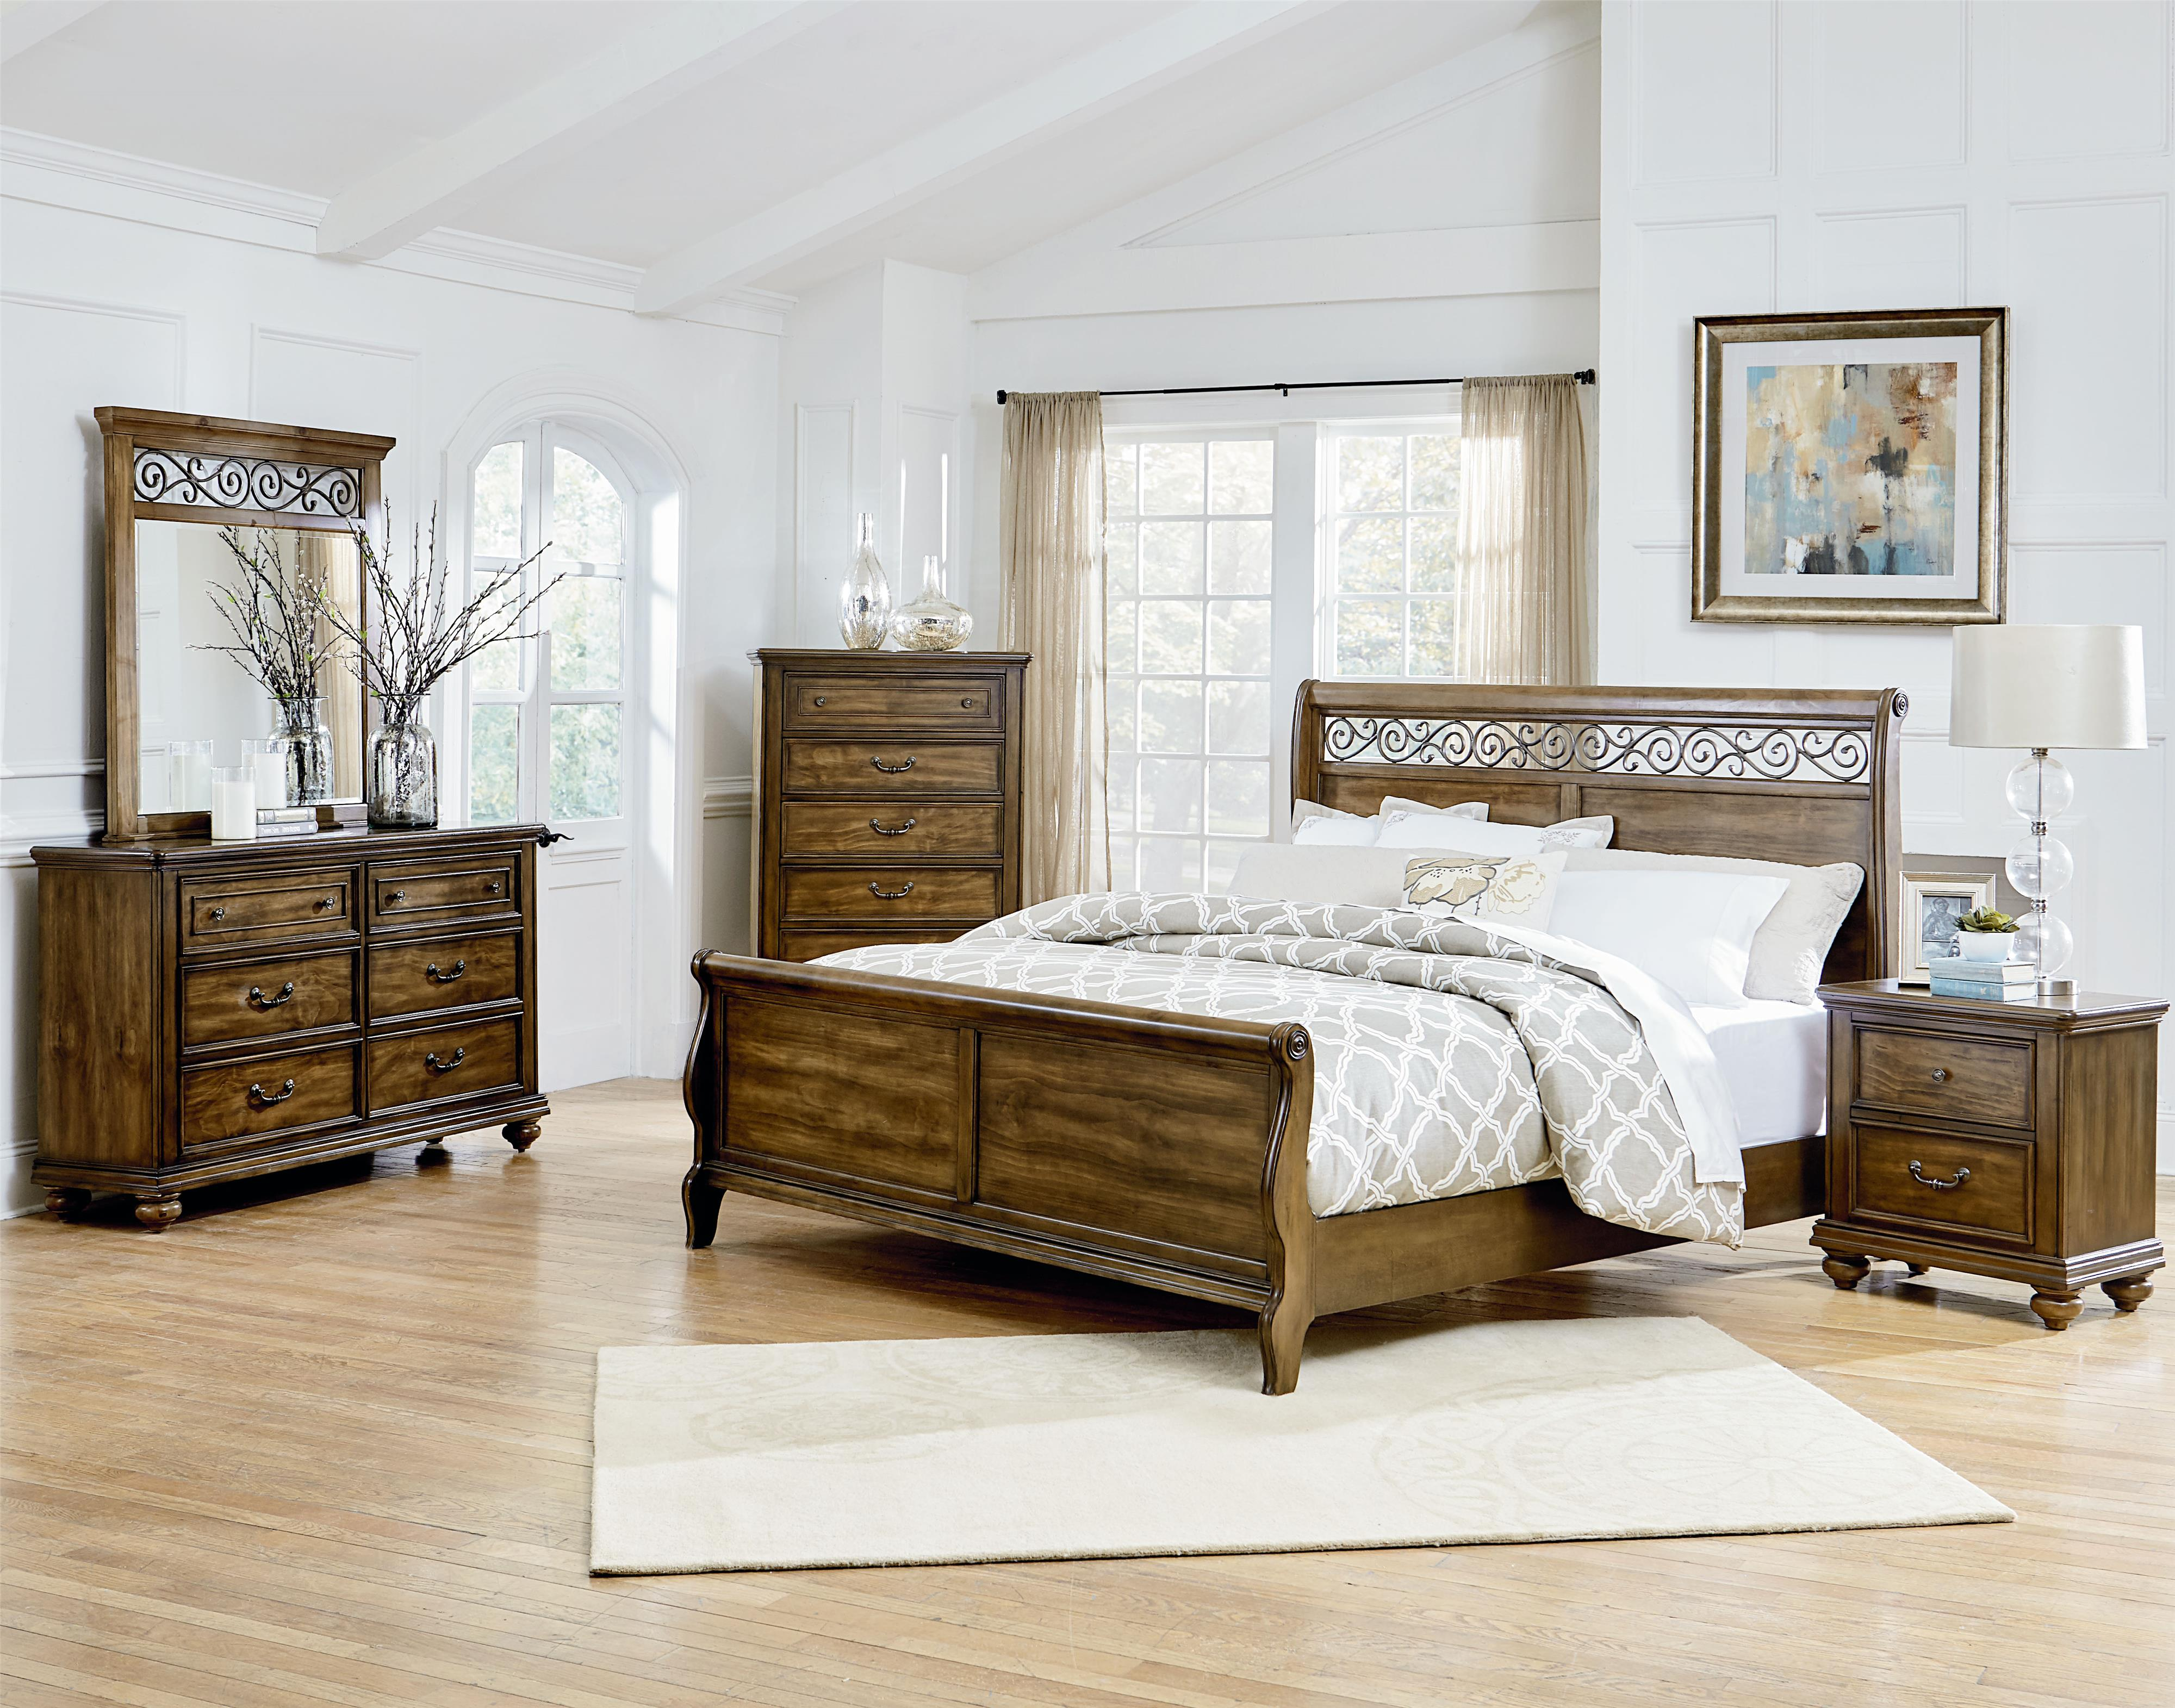 Standard Furniture Monterey Queen Bedroom Group - Item Number: 81900 Q Bedroom Group 1